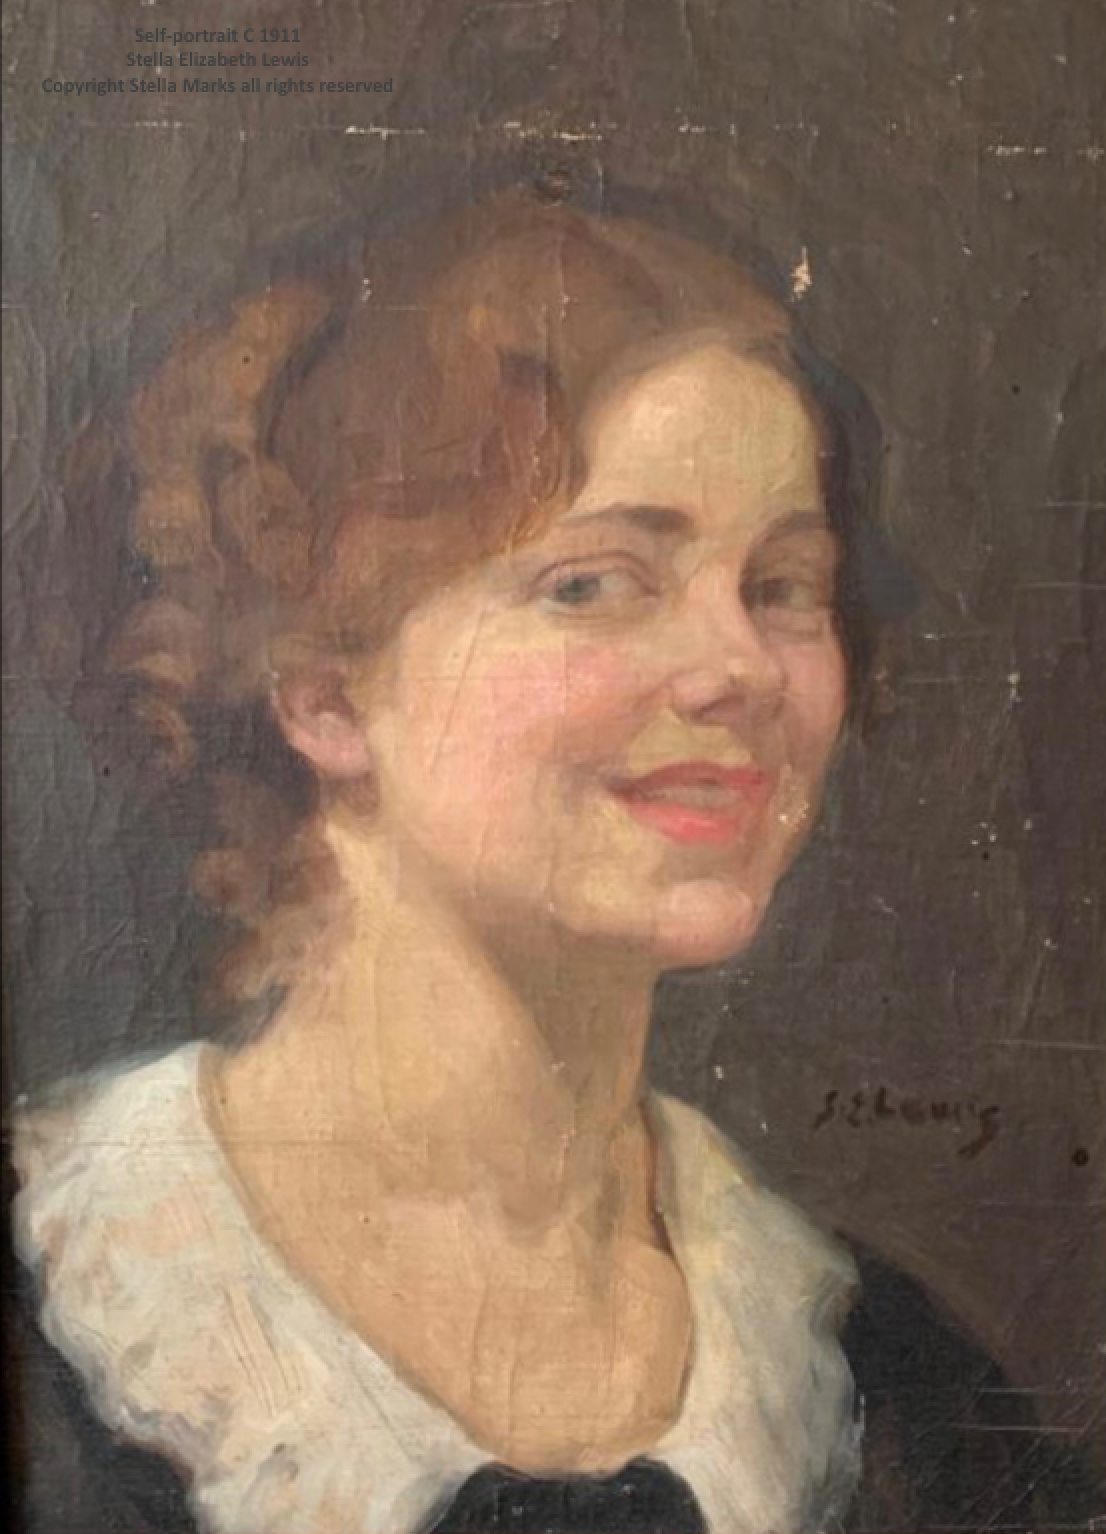 Self-portrait of Stella Marks before her marriage, signed S.E. Lewis. Copyright Stella Marks' Estate All Rights Reserved